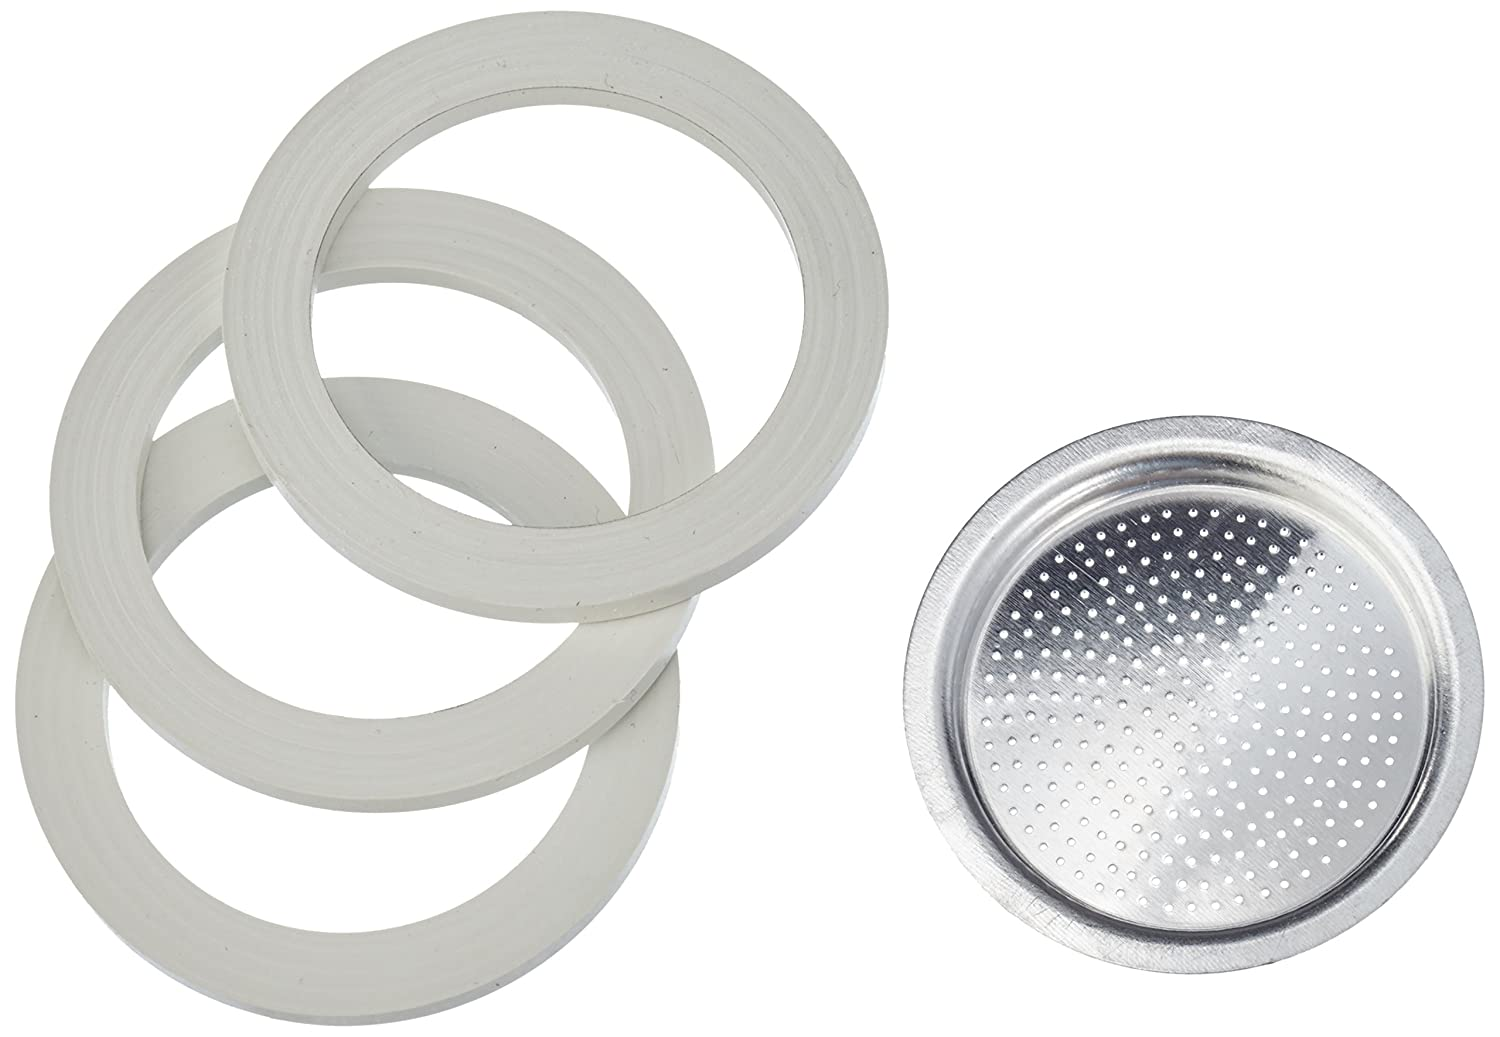 Bialetti 6963 Moka 1 Cup Replacement Filter and 3 Gaskets